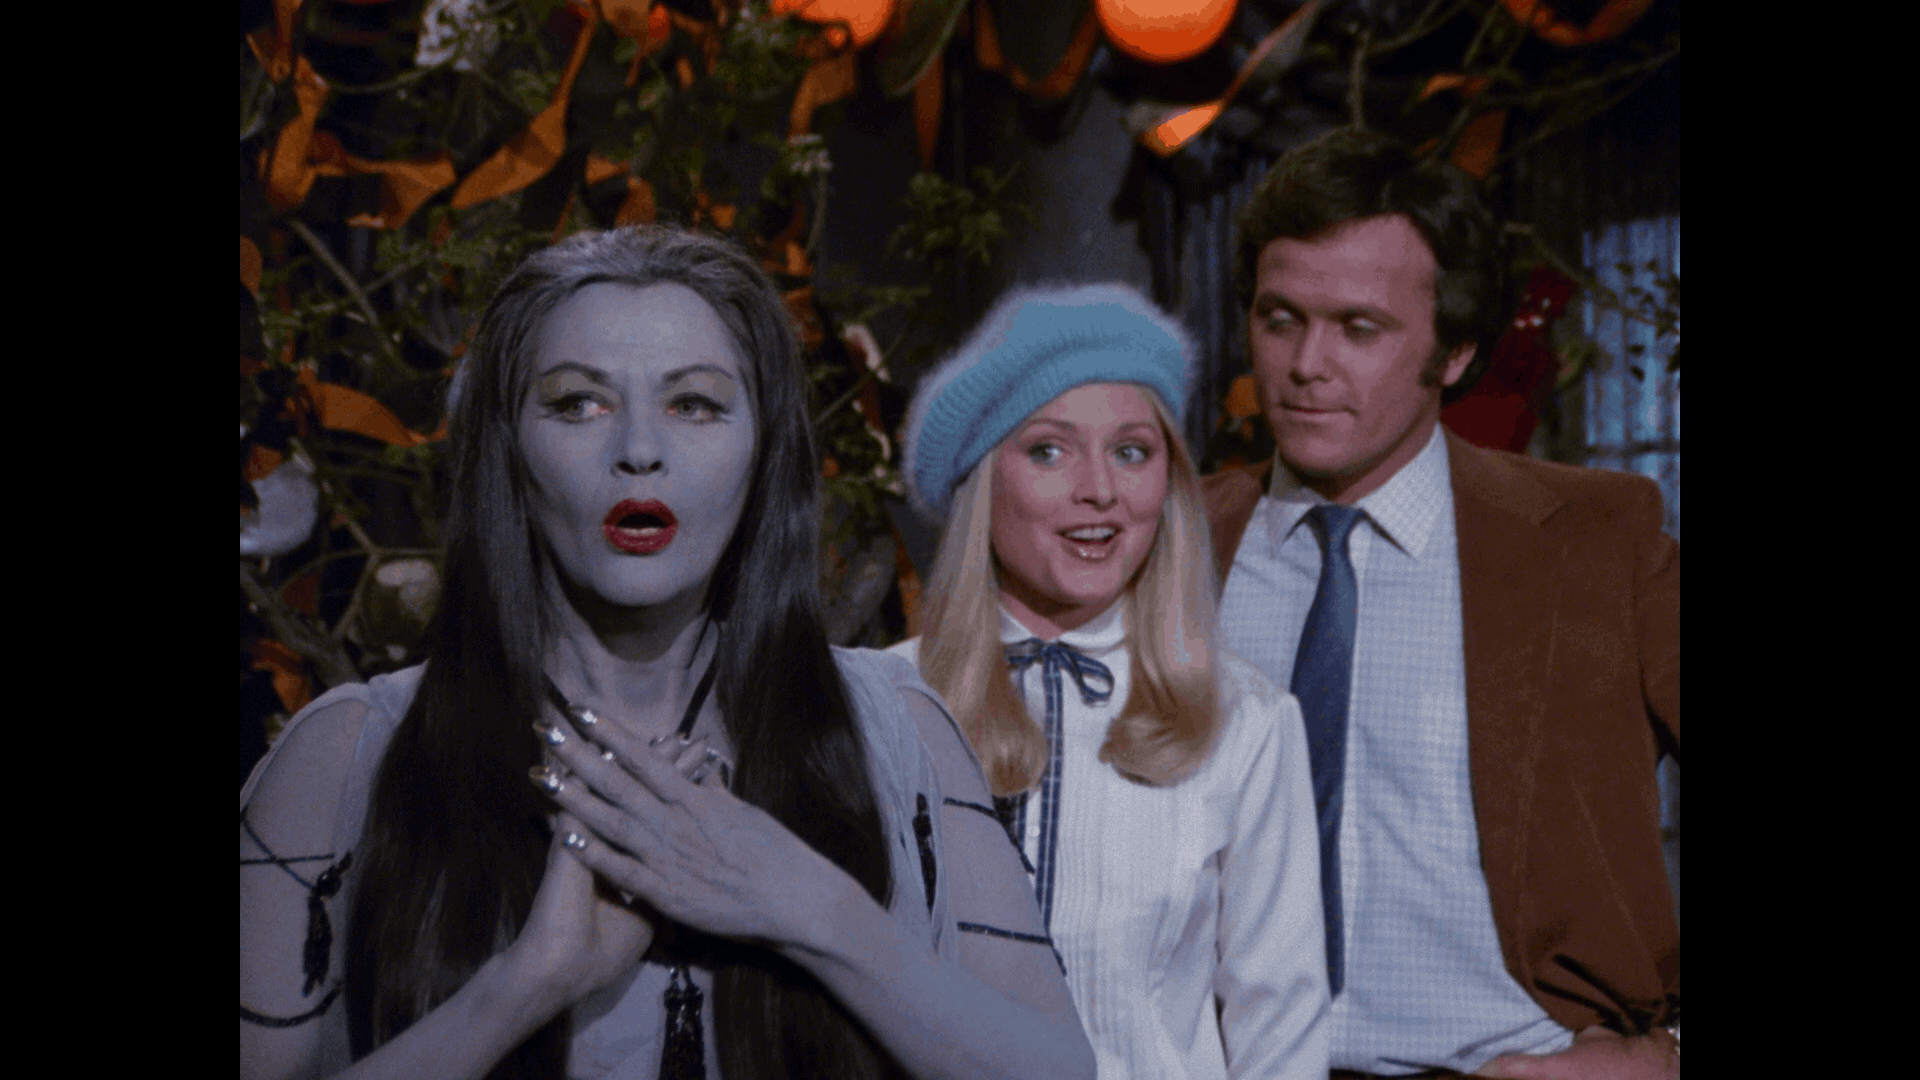 Munster, Go Home! digs through the ditches and burn through the witches. 10